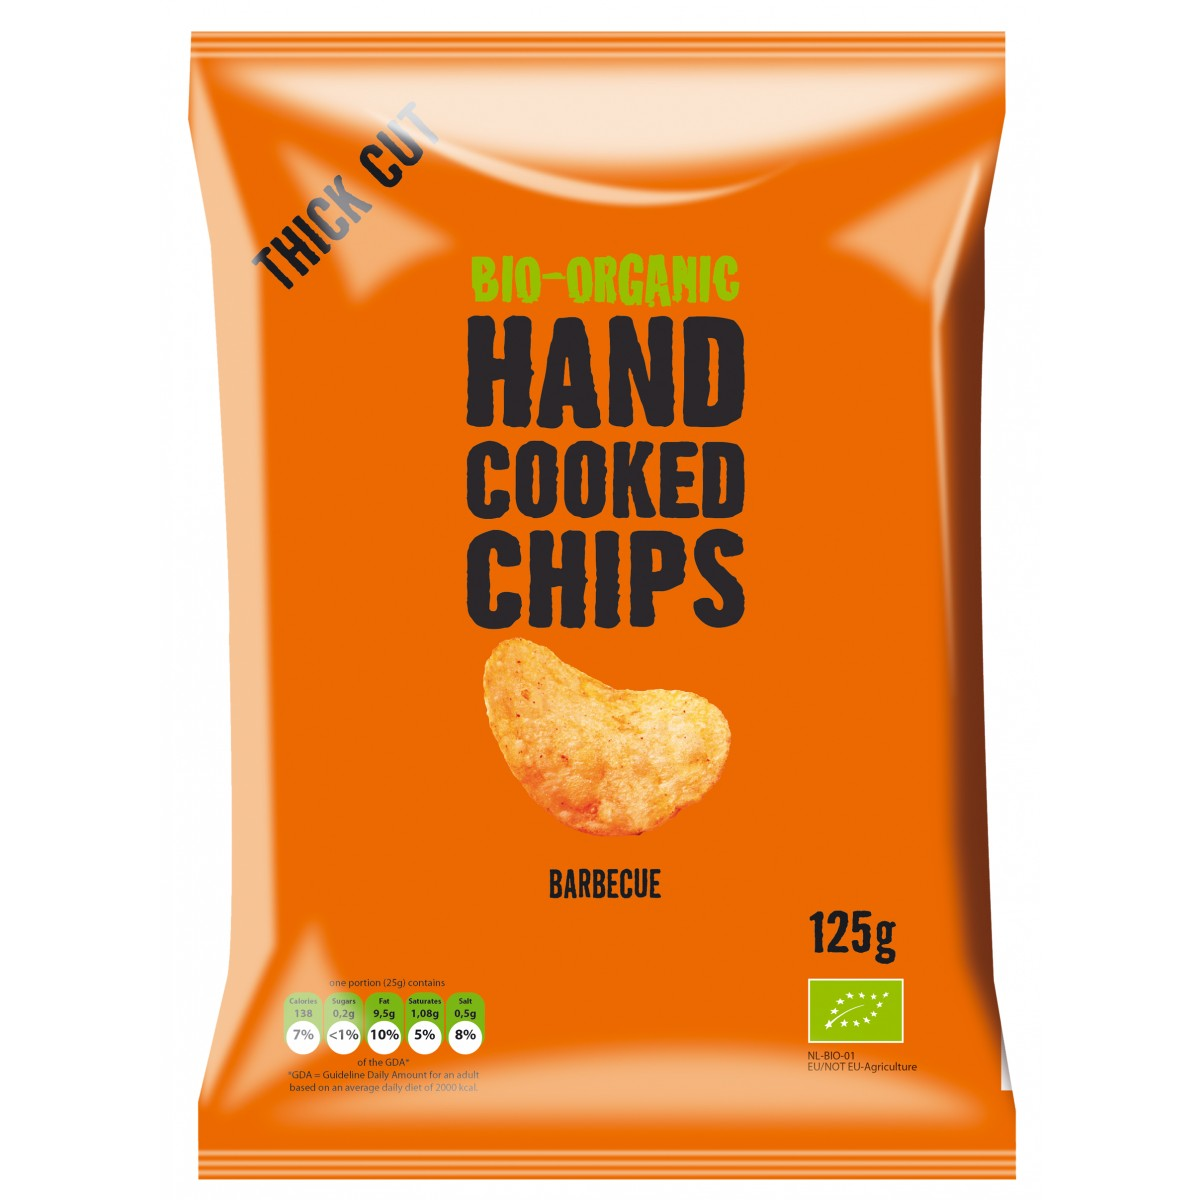 Handcooked Chips Barbecue